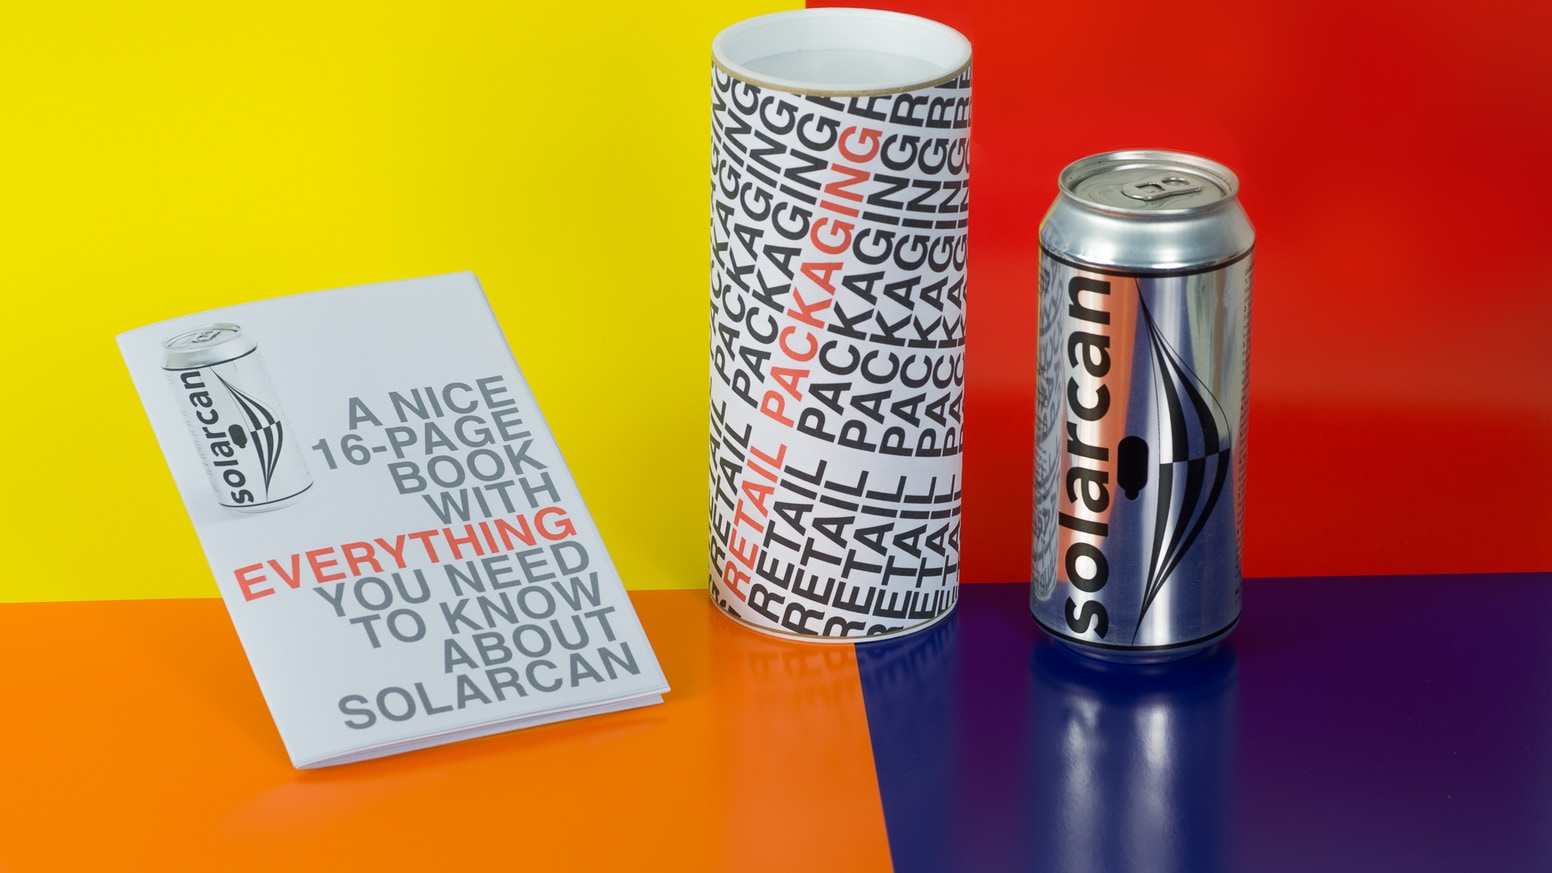 As part of Kickstarter's ' Make 100 ' initiative we hope to fund the 3rd and final phase of Solarcan: retail packaging.